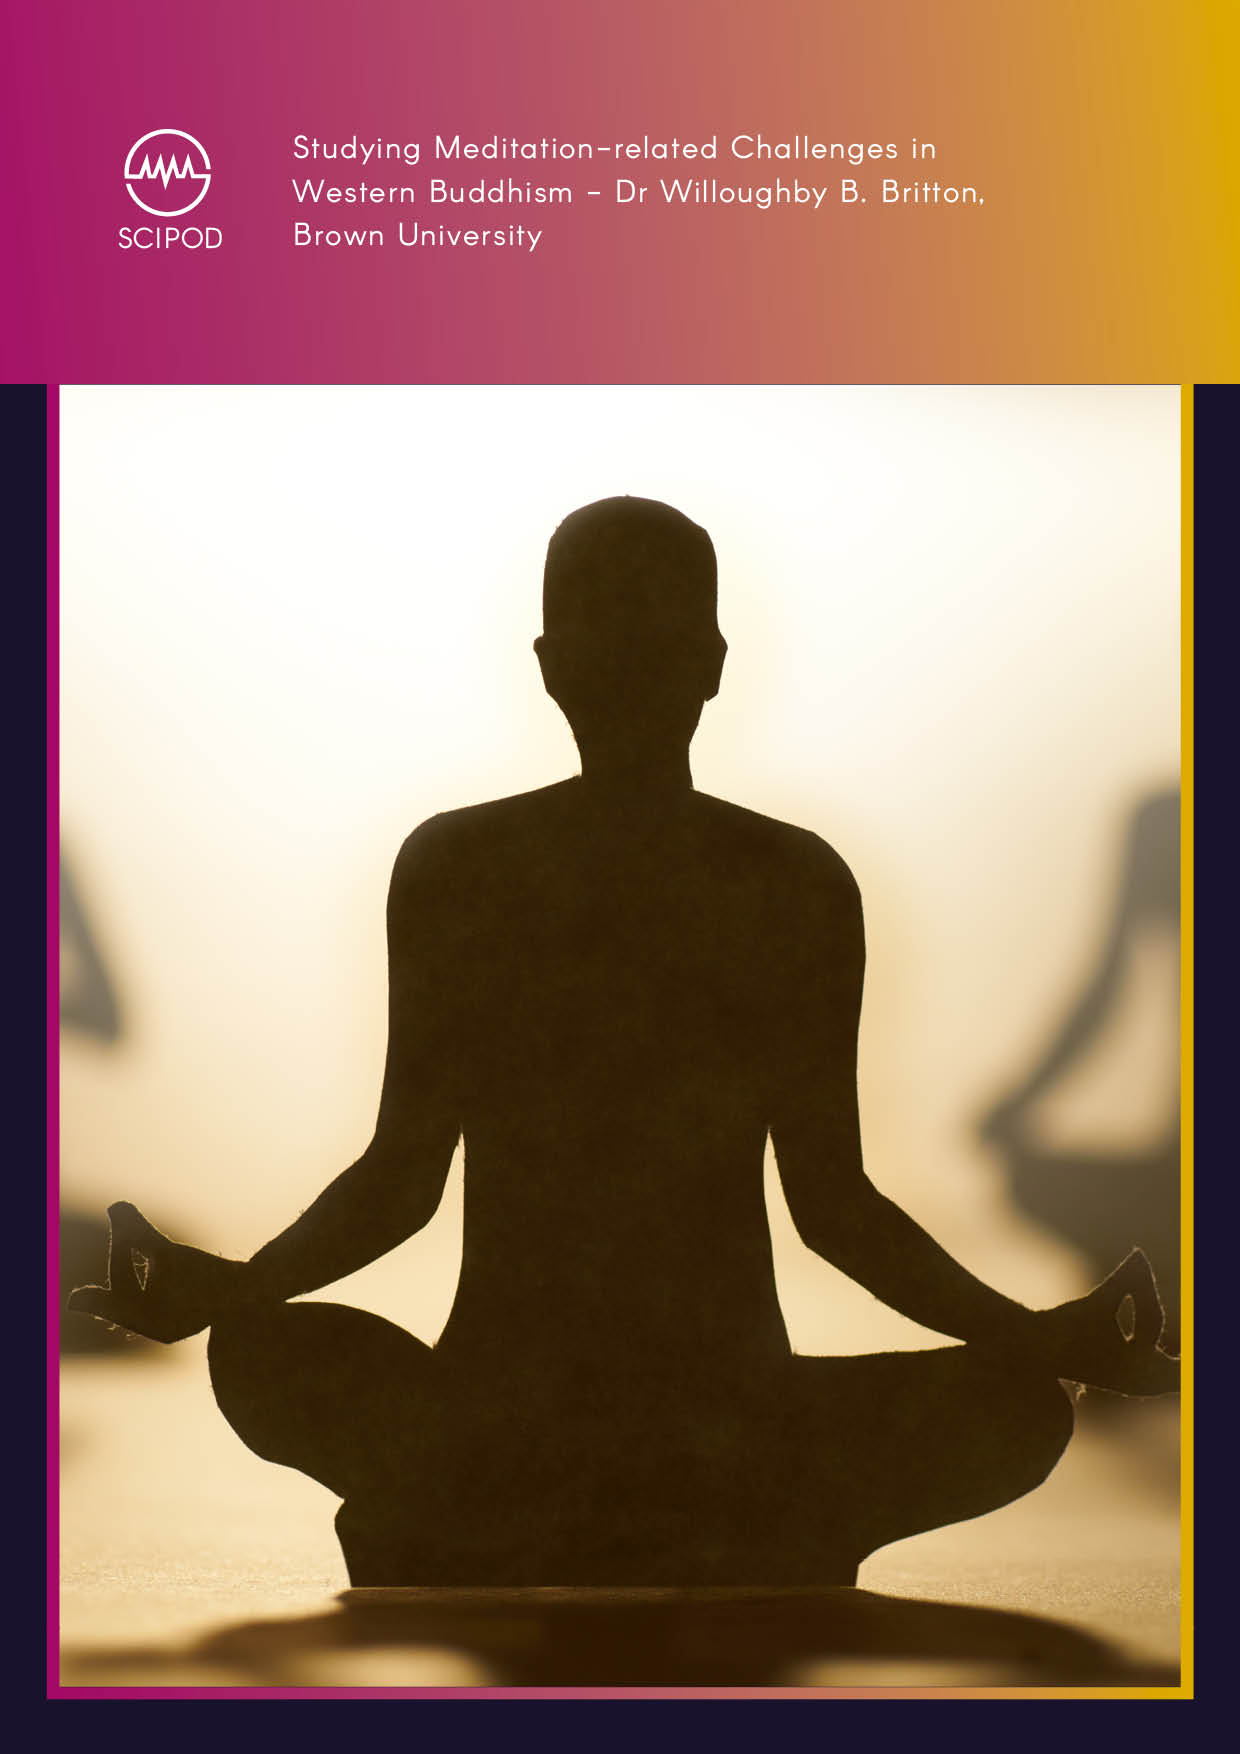 Studying Meditation-related Challenges in Western Buddhism -Dr Willoughby B. Britton, Brown University